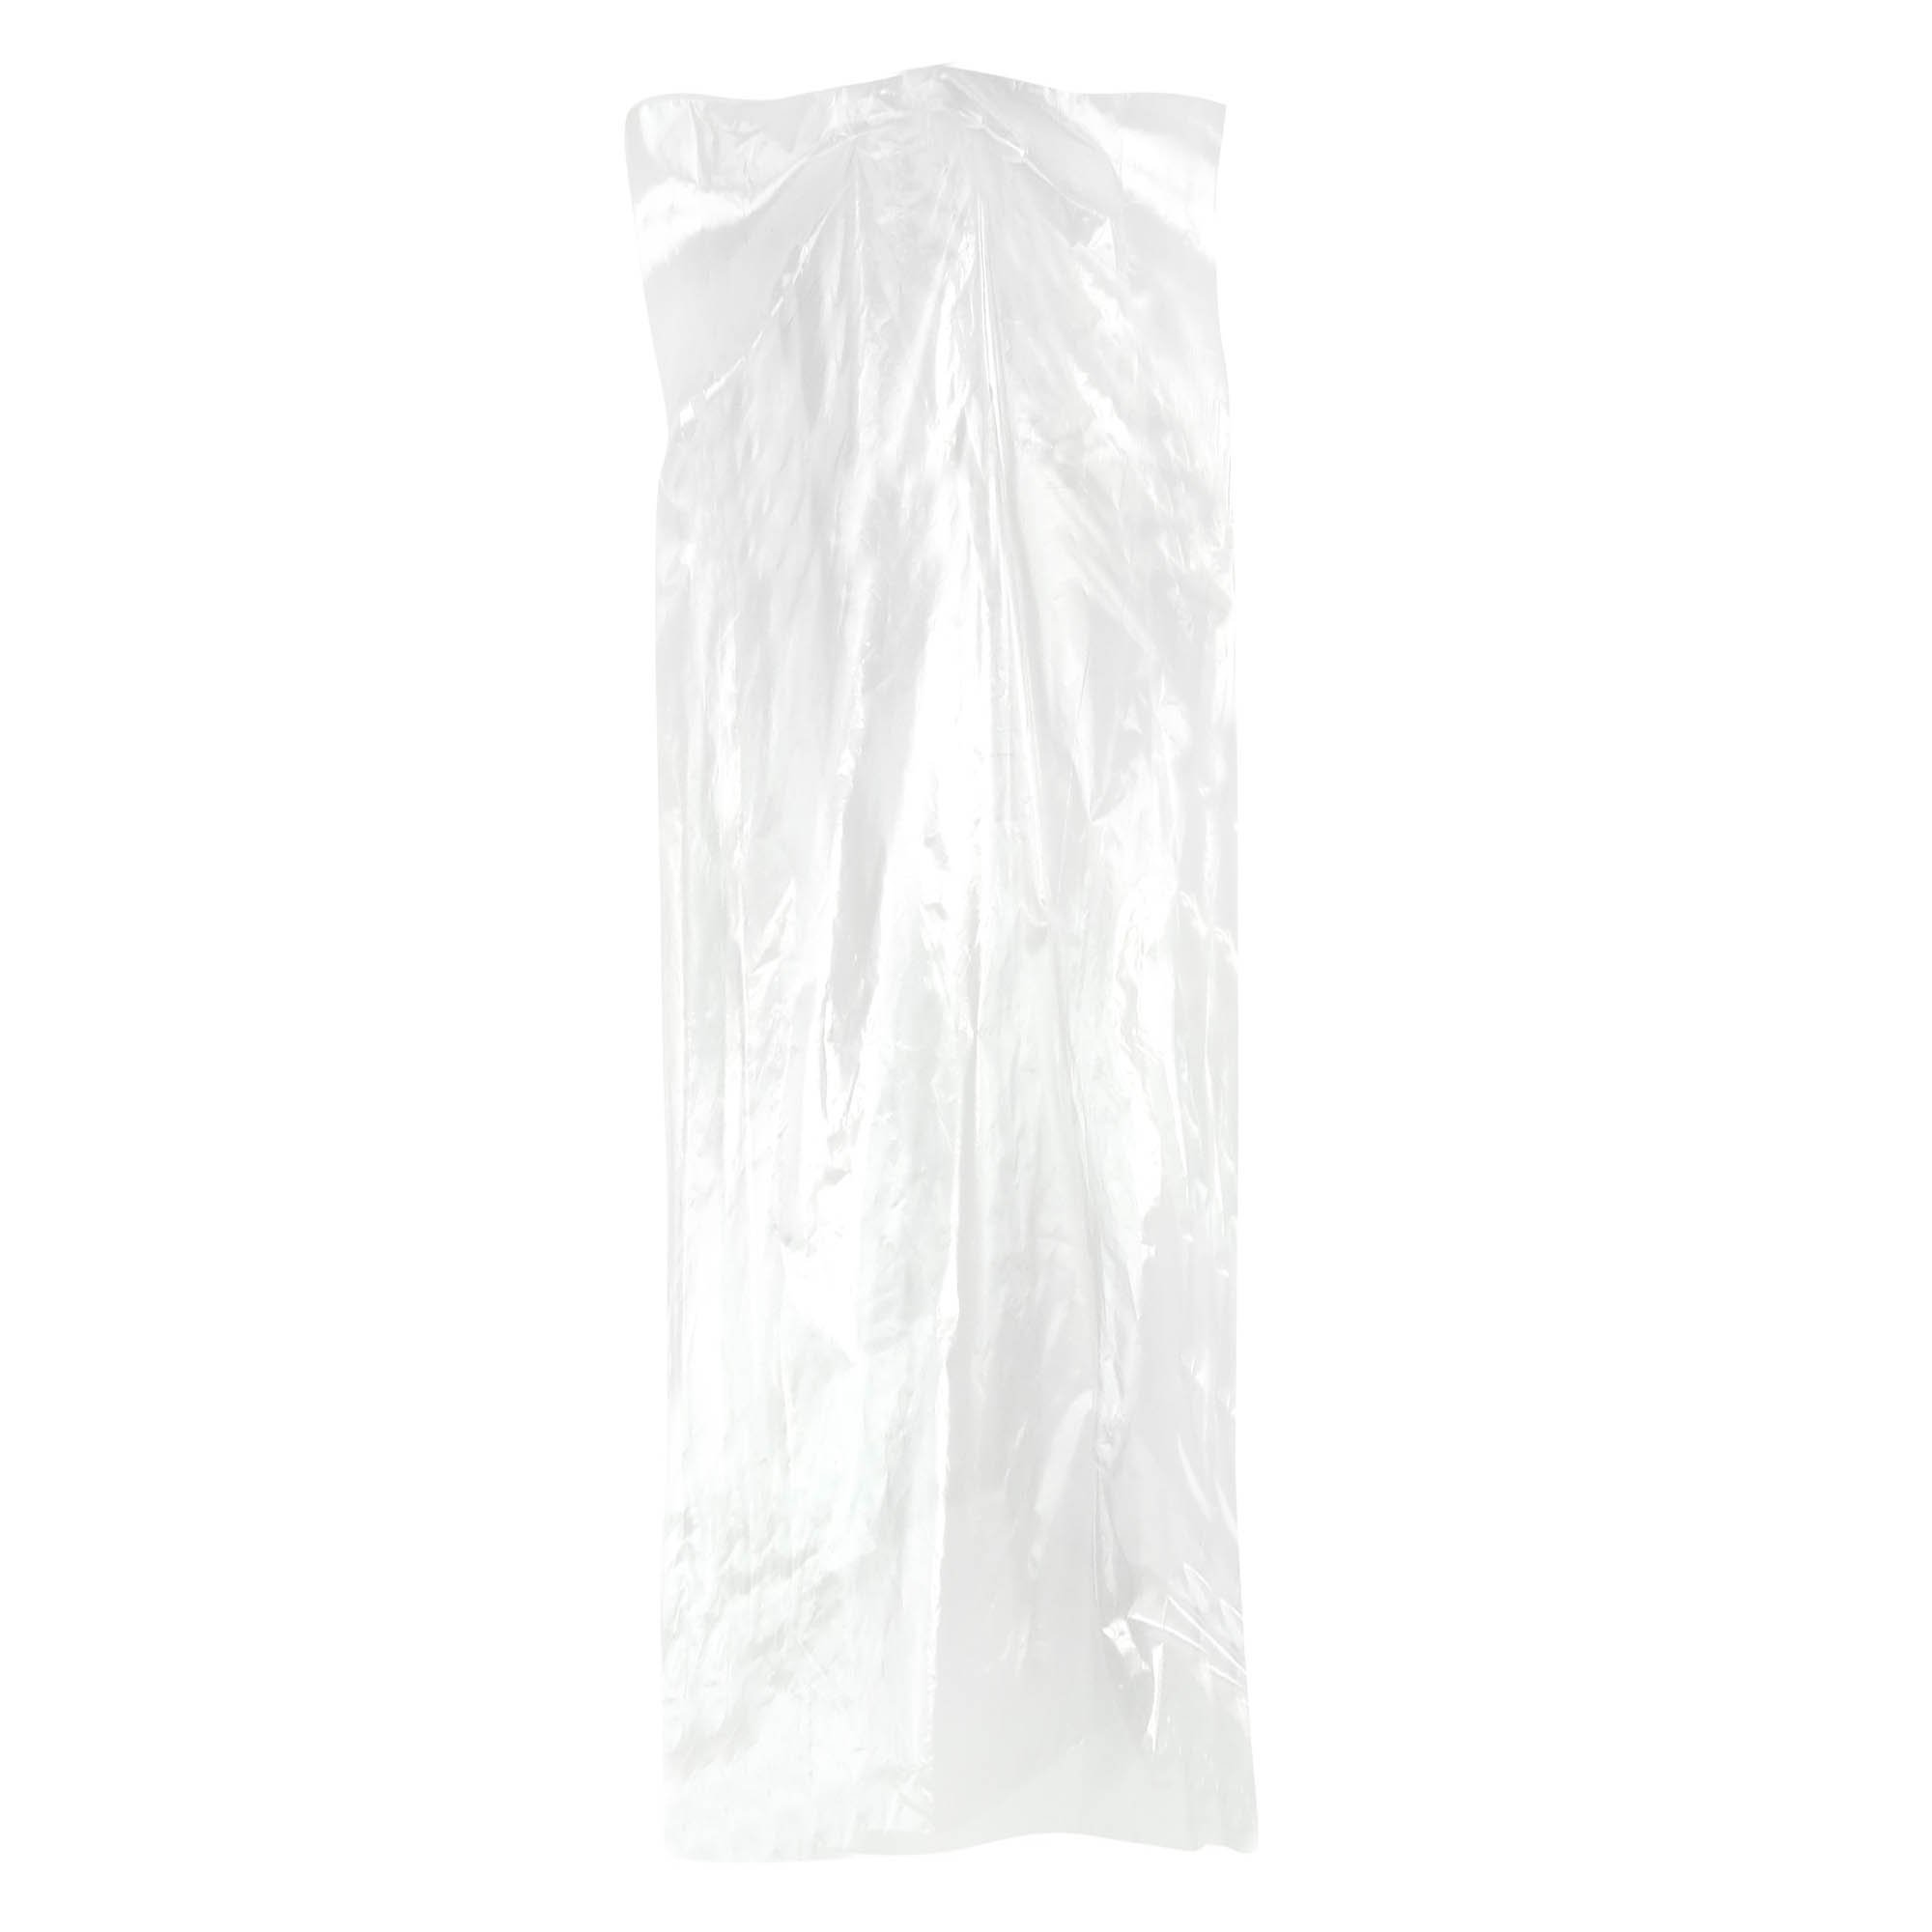 Hangerworld Pack of 20 Clear Polythene Garment Covers - 72 Inches - Ideal Length for Full-Length Pants, Skirts etc. by HANGERWORLD (Image #4)